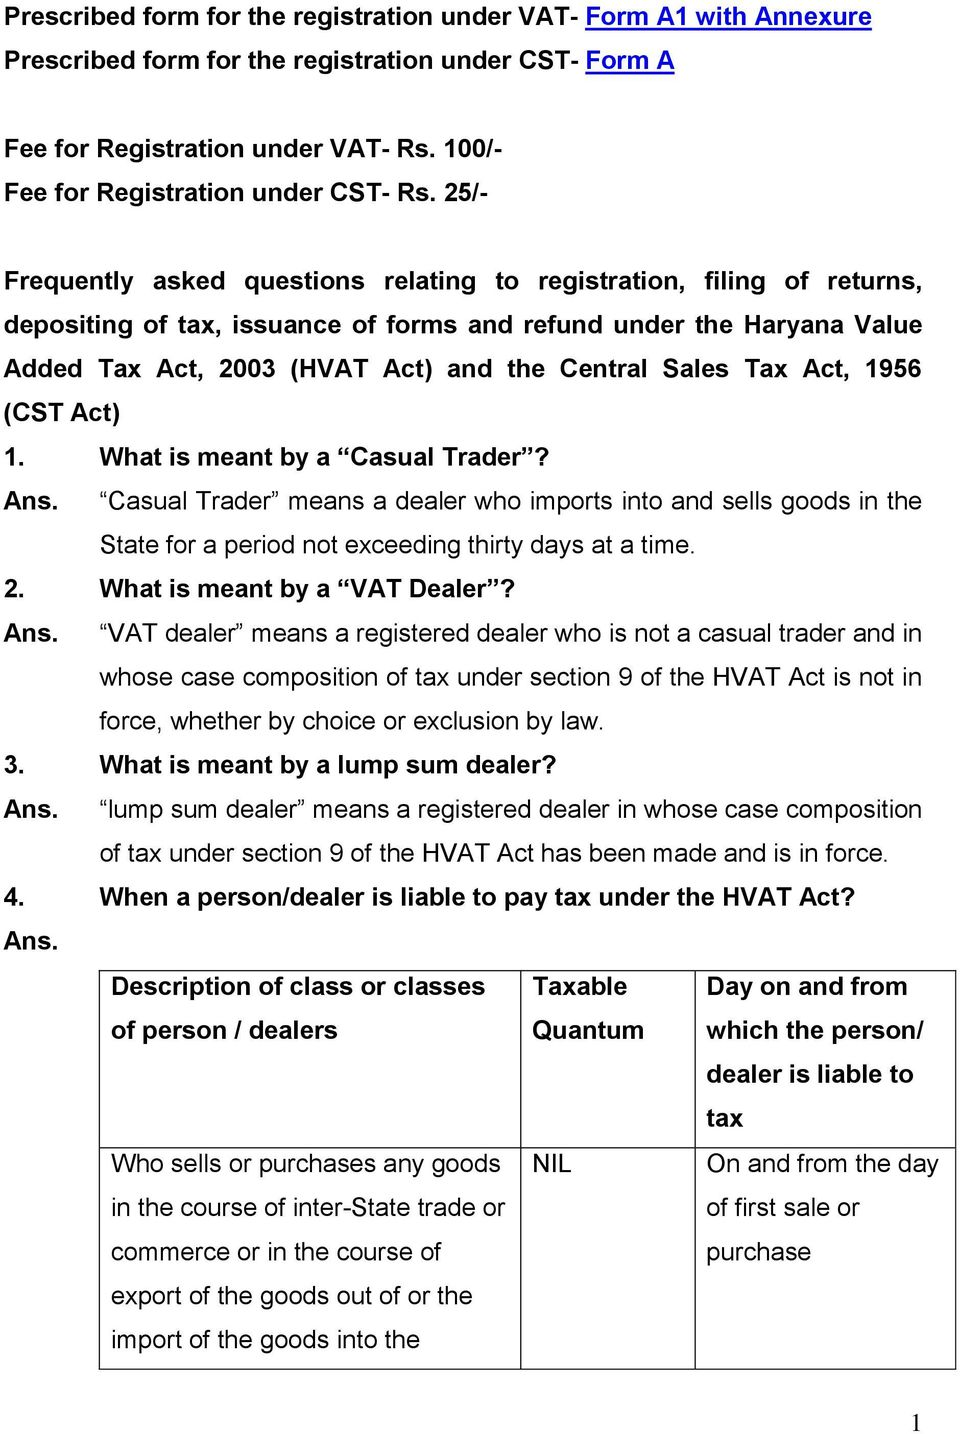 25/- Frequently asked questions relating to registration, filing of returns, depositing of tax, issuance of forms and refund under the Haryana Value Added Tax Act, 2003 (HVAT Act) and the Central